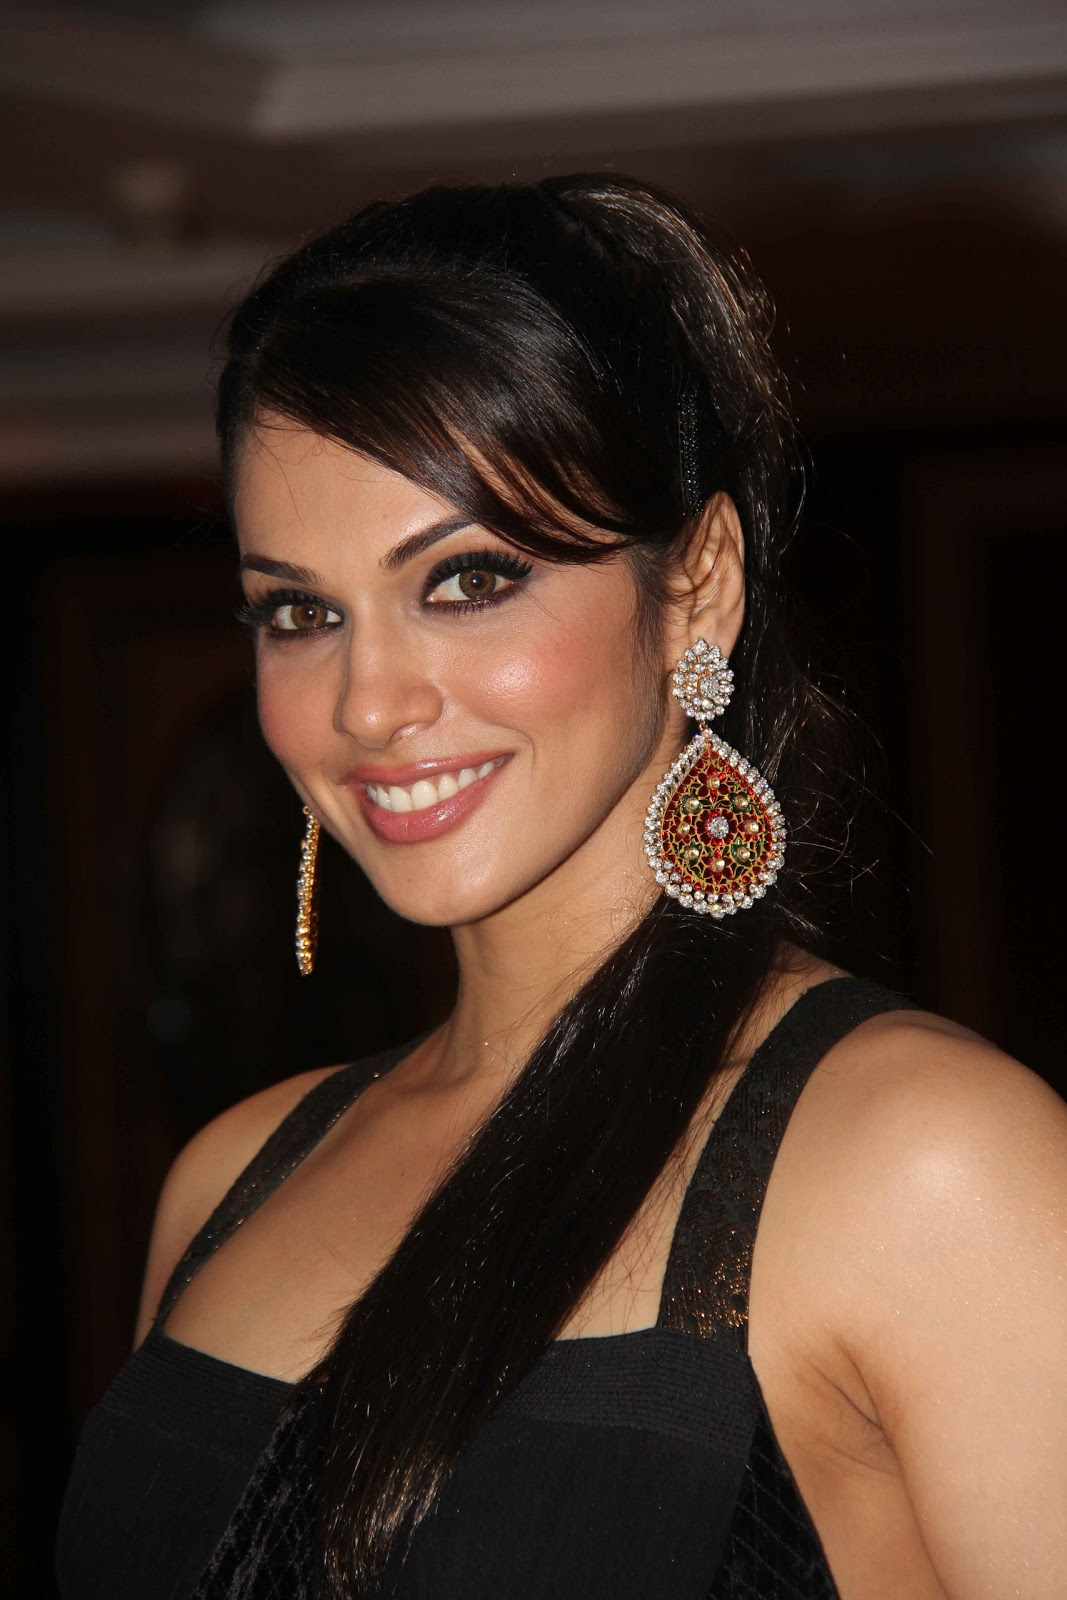 Eesha Koppikhar Looks Stunning In Black Dress